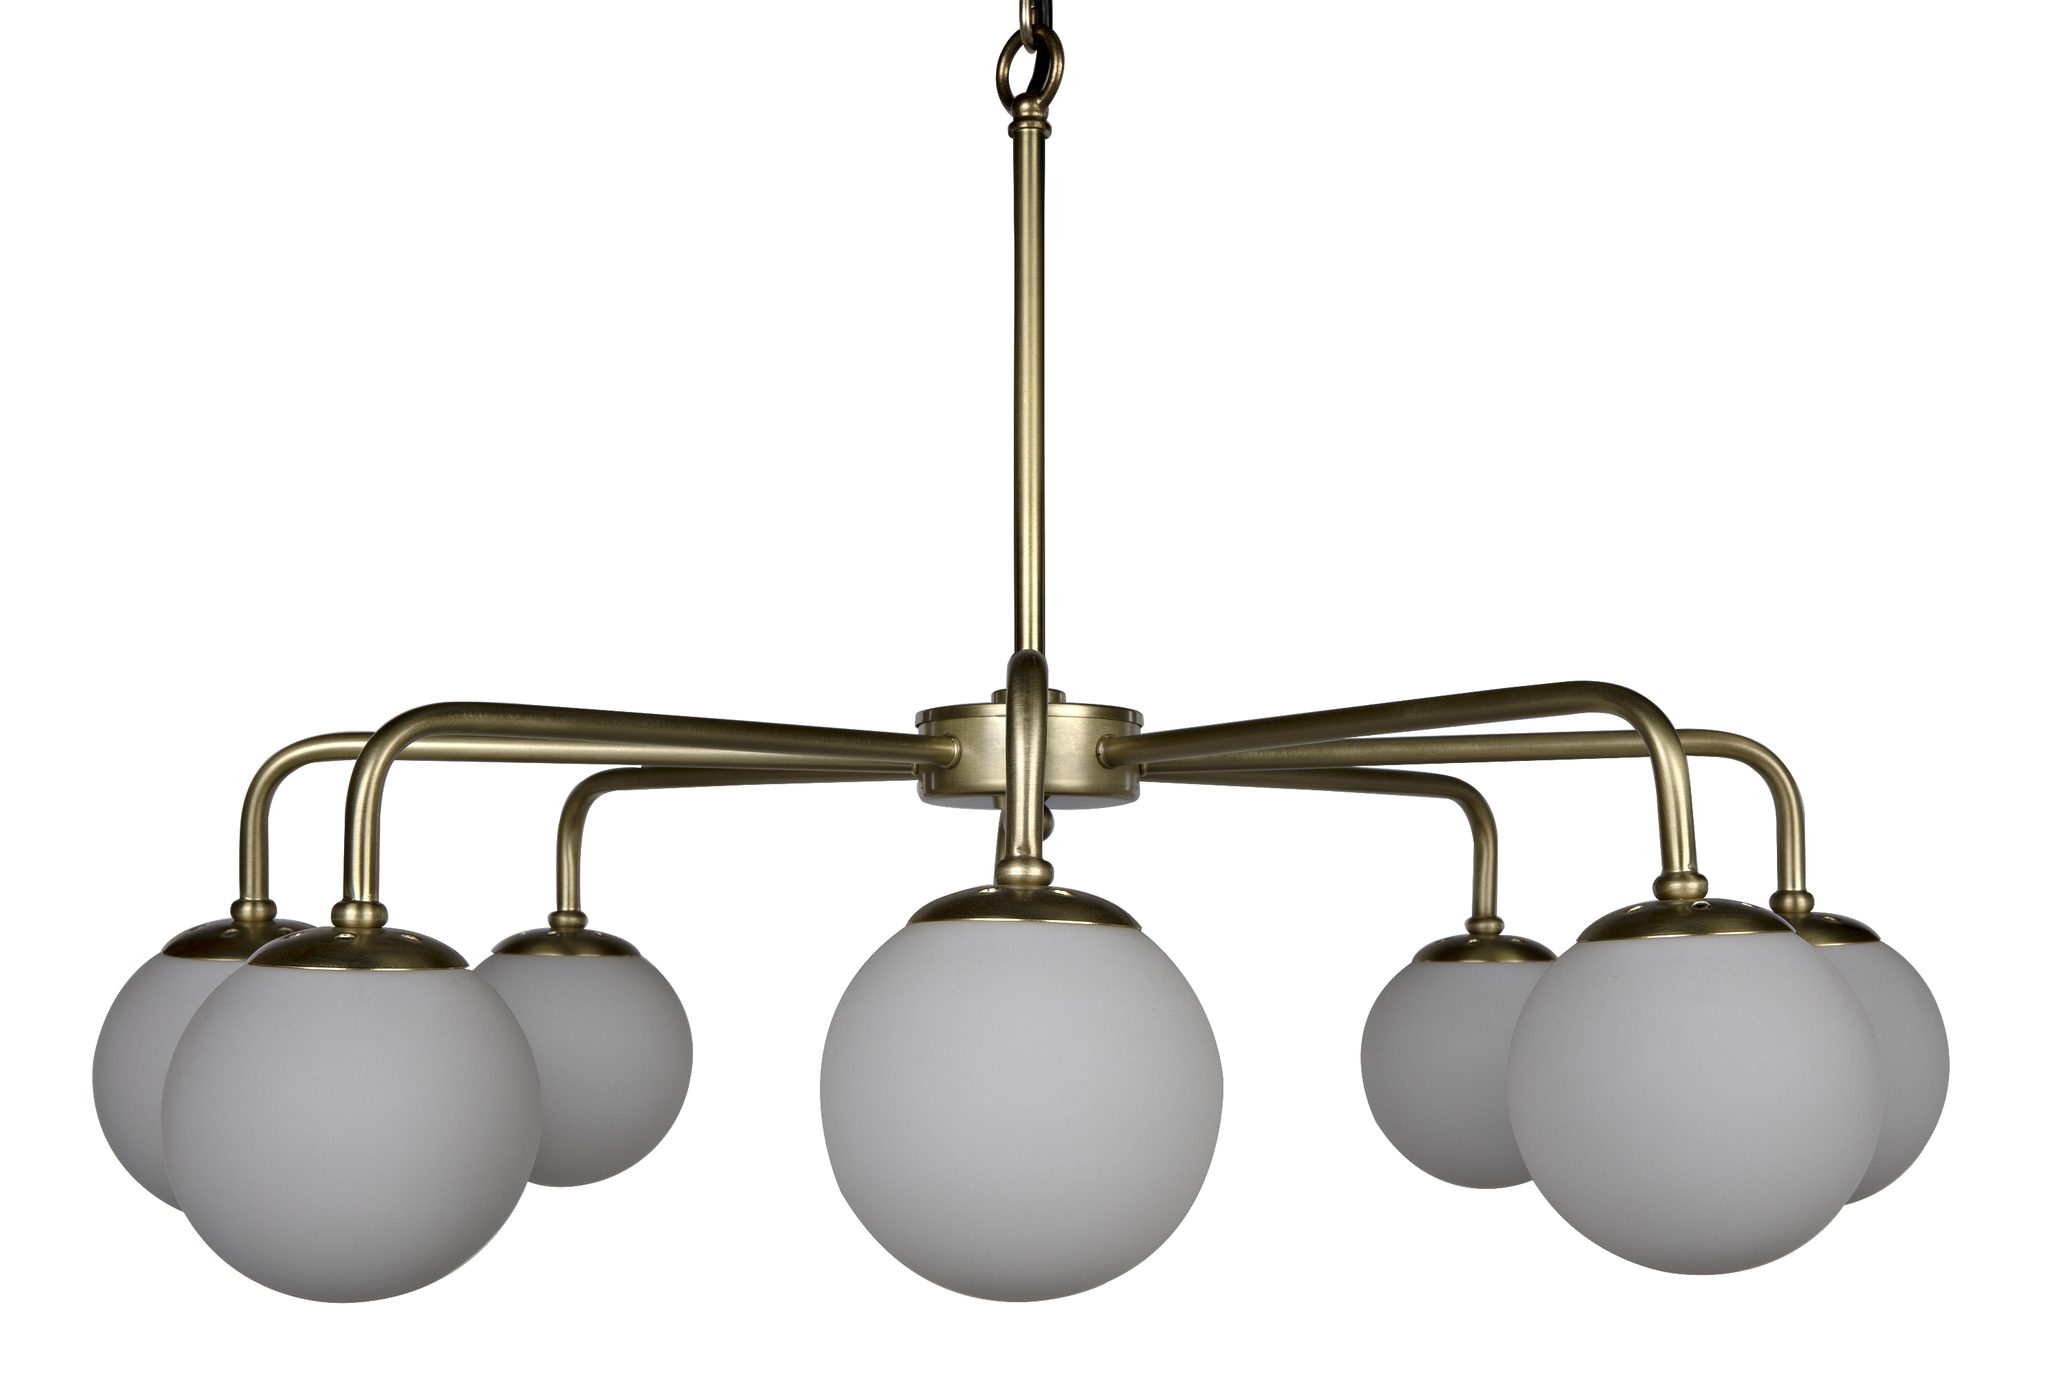 Qs larenta chandelier antique brass metal and glass chandeliers download image arubaitofo Image collections